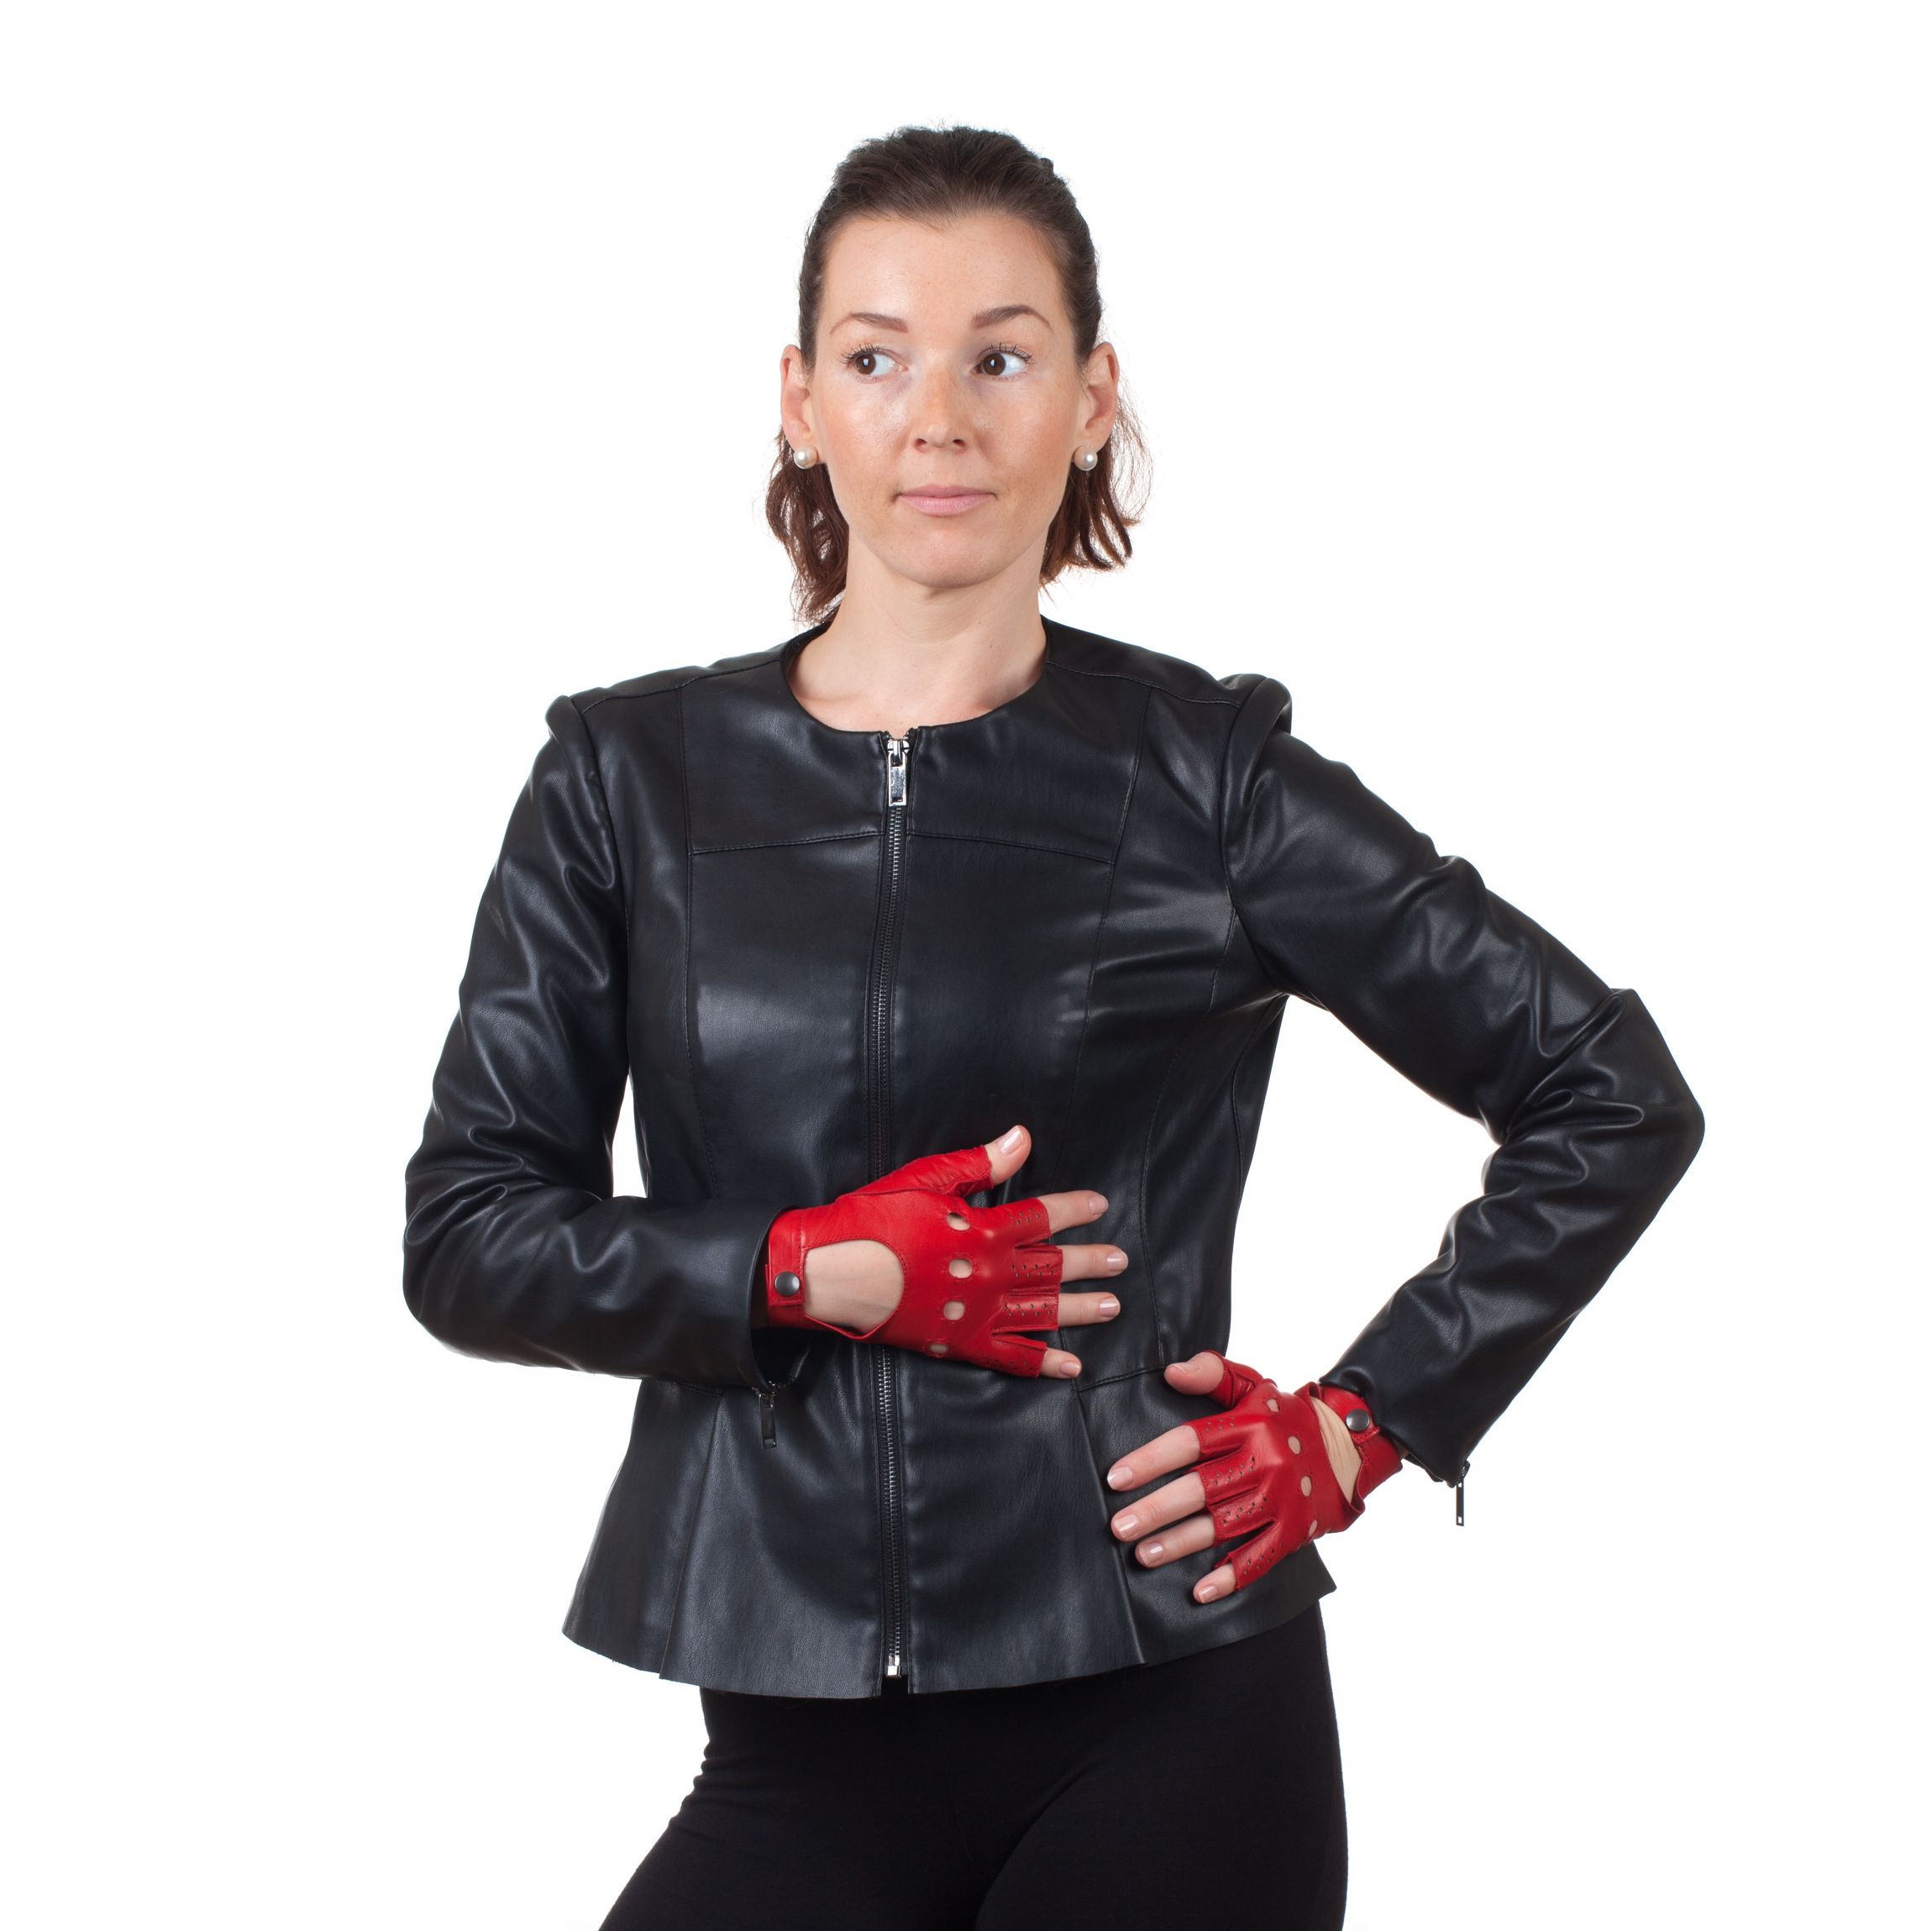 Ladies unlined leather driving gloves - Drive In Style With Our Italian Leather Driving Gloves Unlined Soft And Fingerless They Create Ultimate Comfort With Ease Of Wear